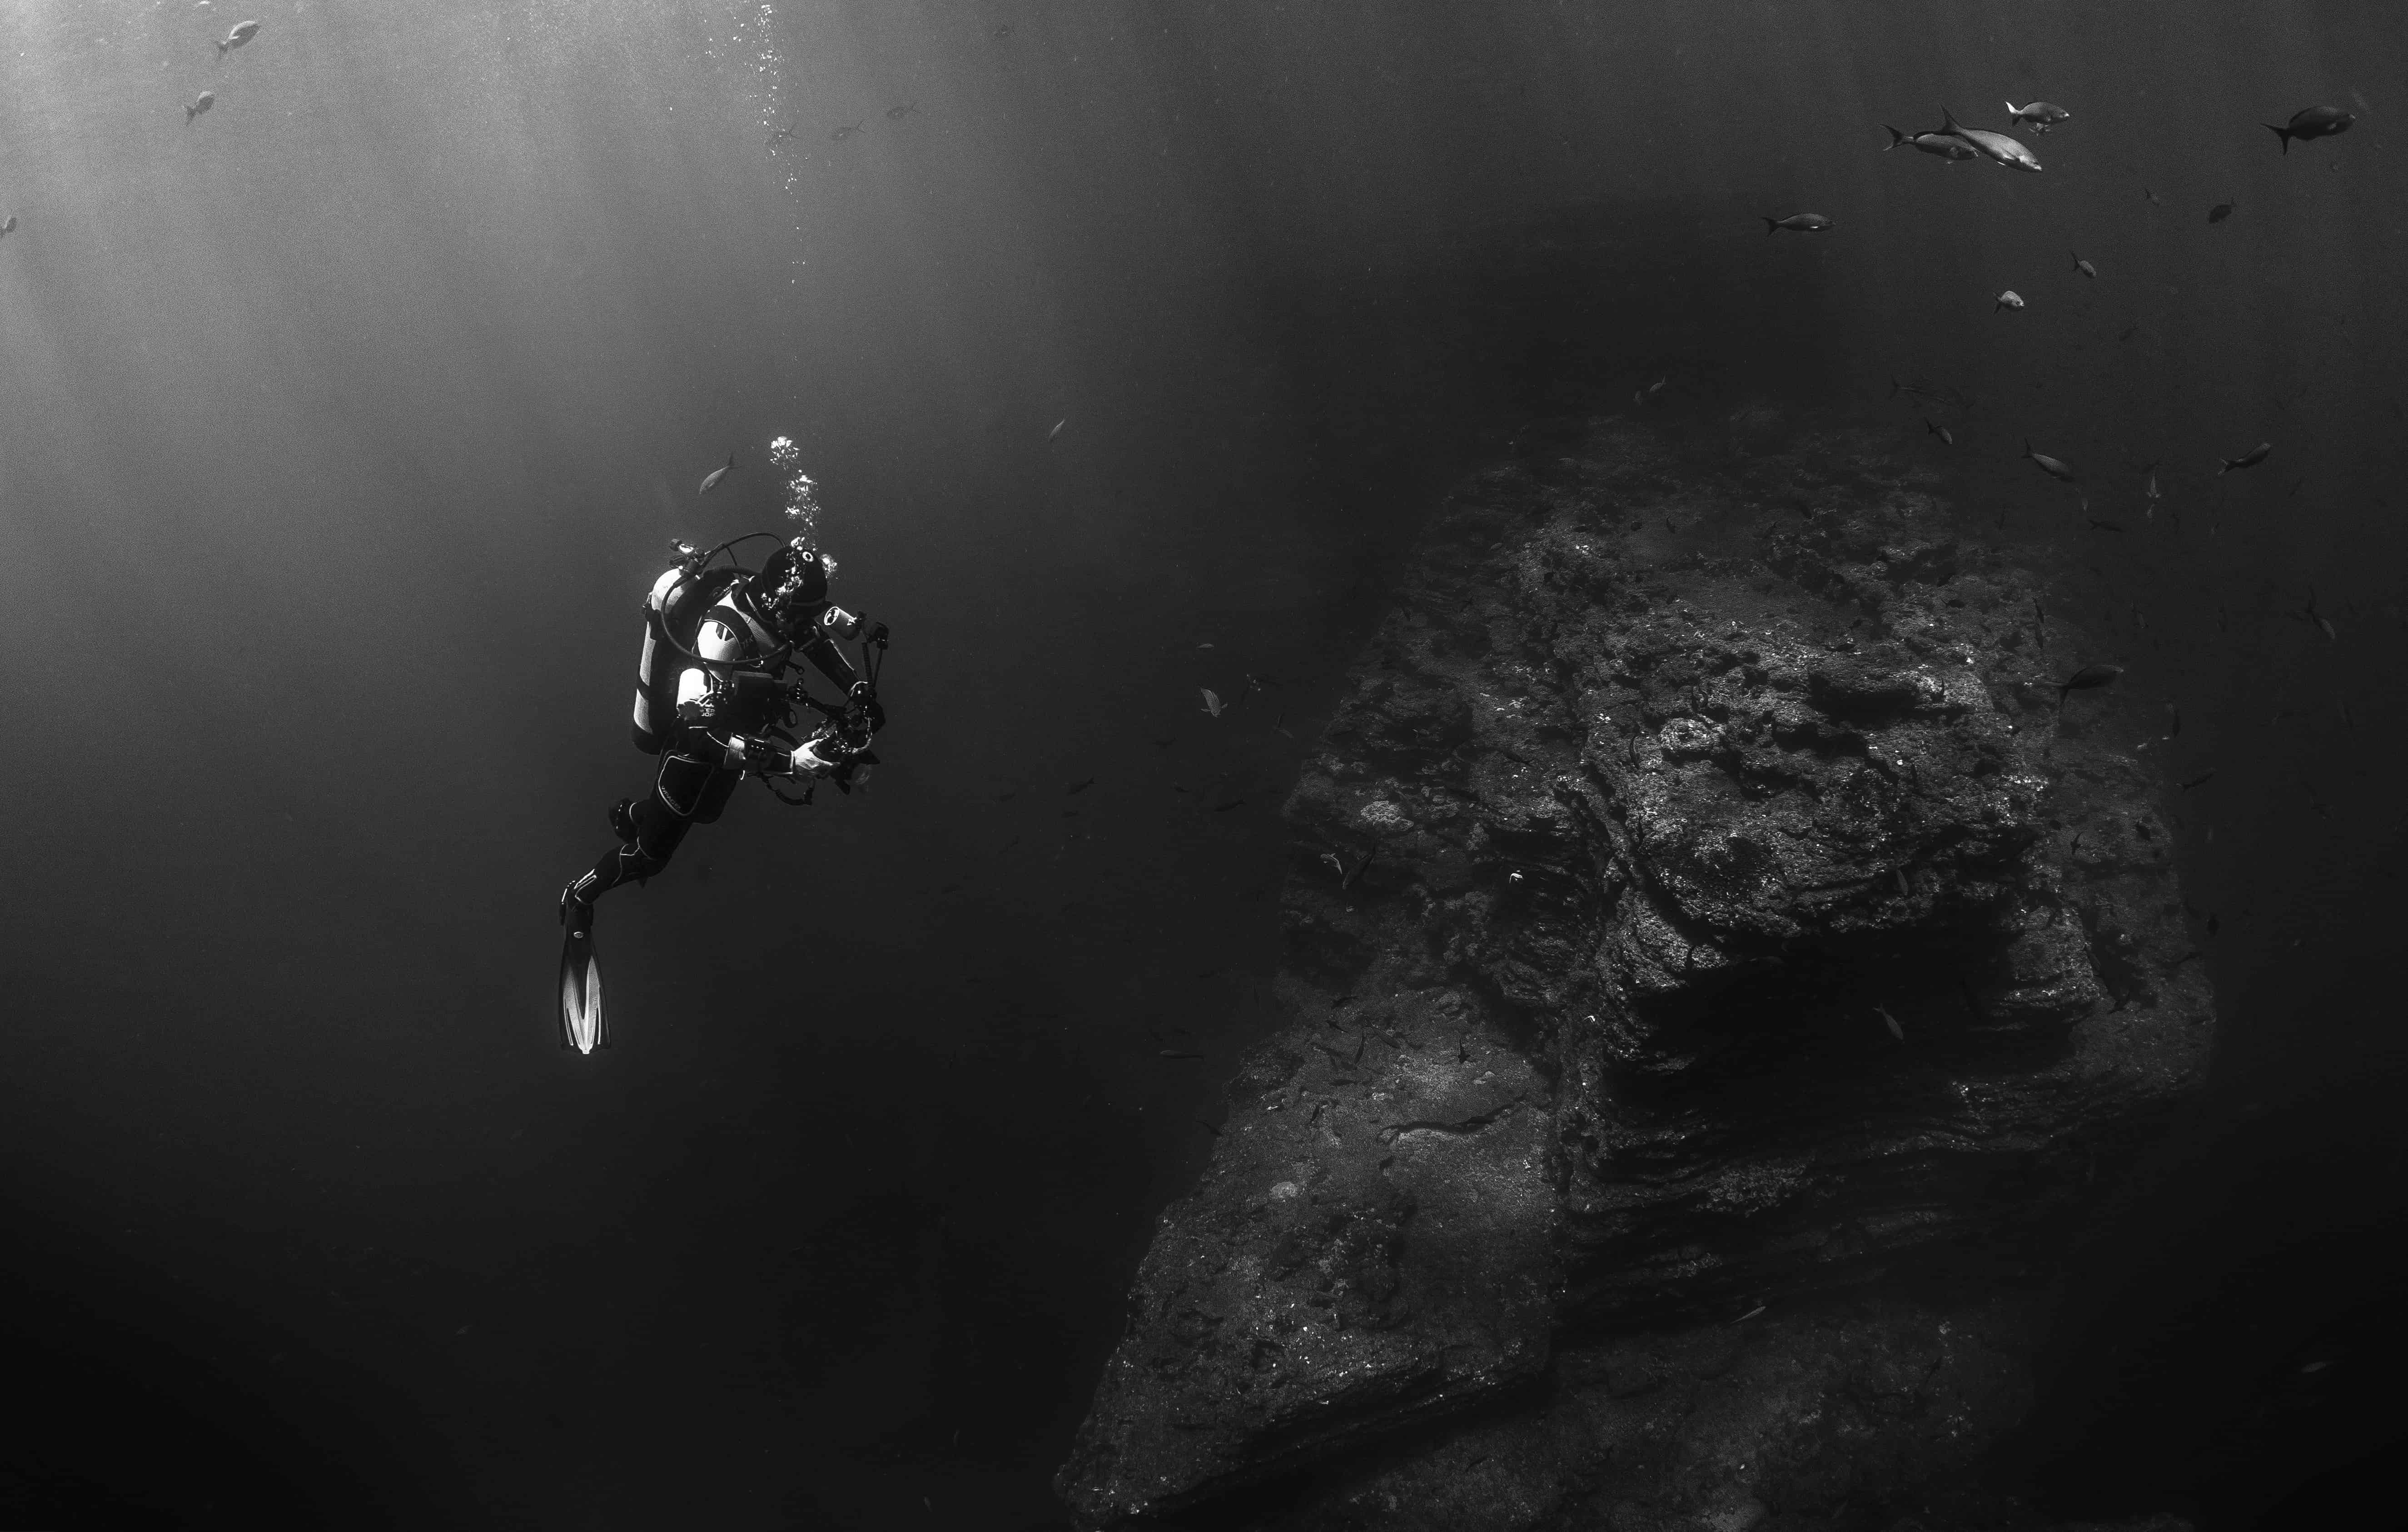 Scuba Diving Photography